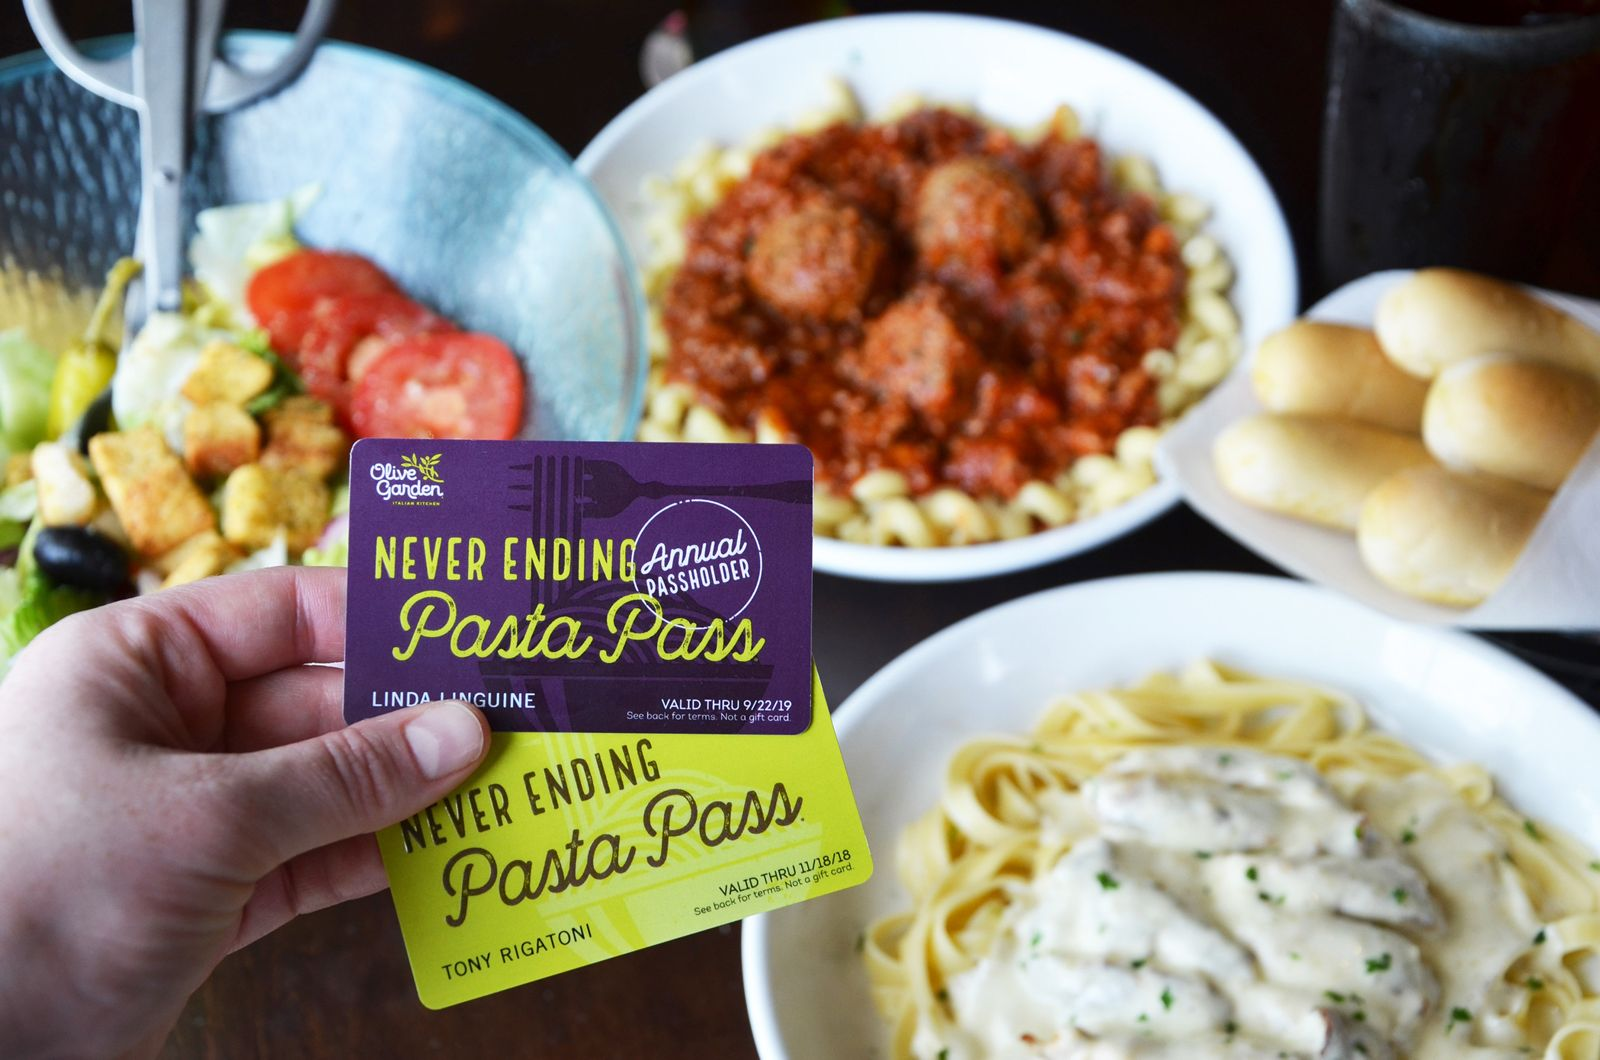 olive garden introduces first of its kind annual pasta pass that extends - Olive Garden Donation Request